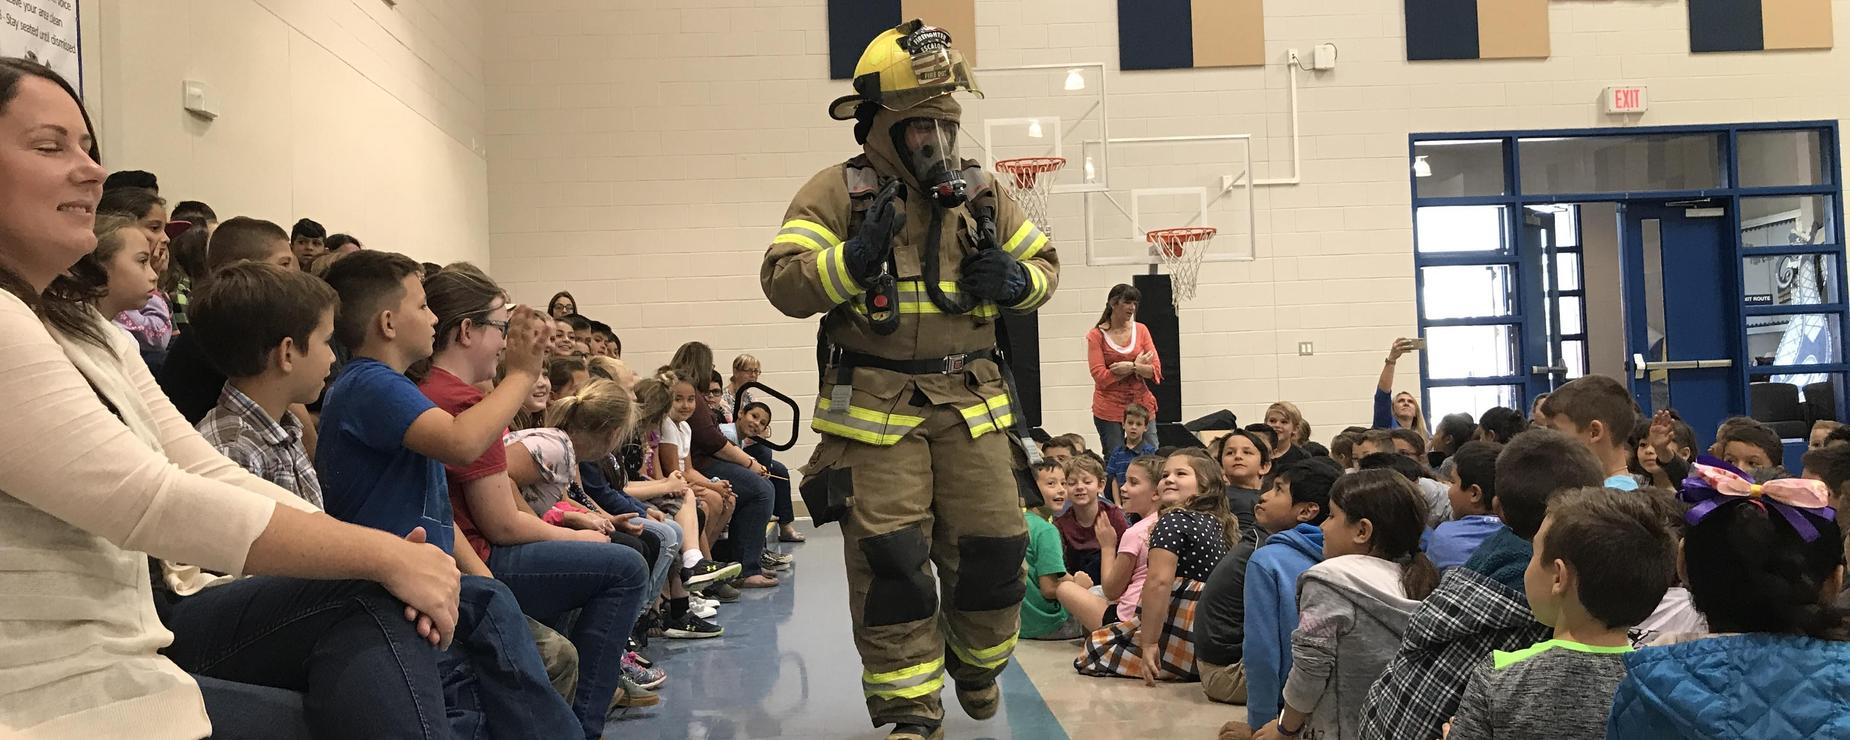 Fire Safety assembly